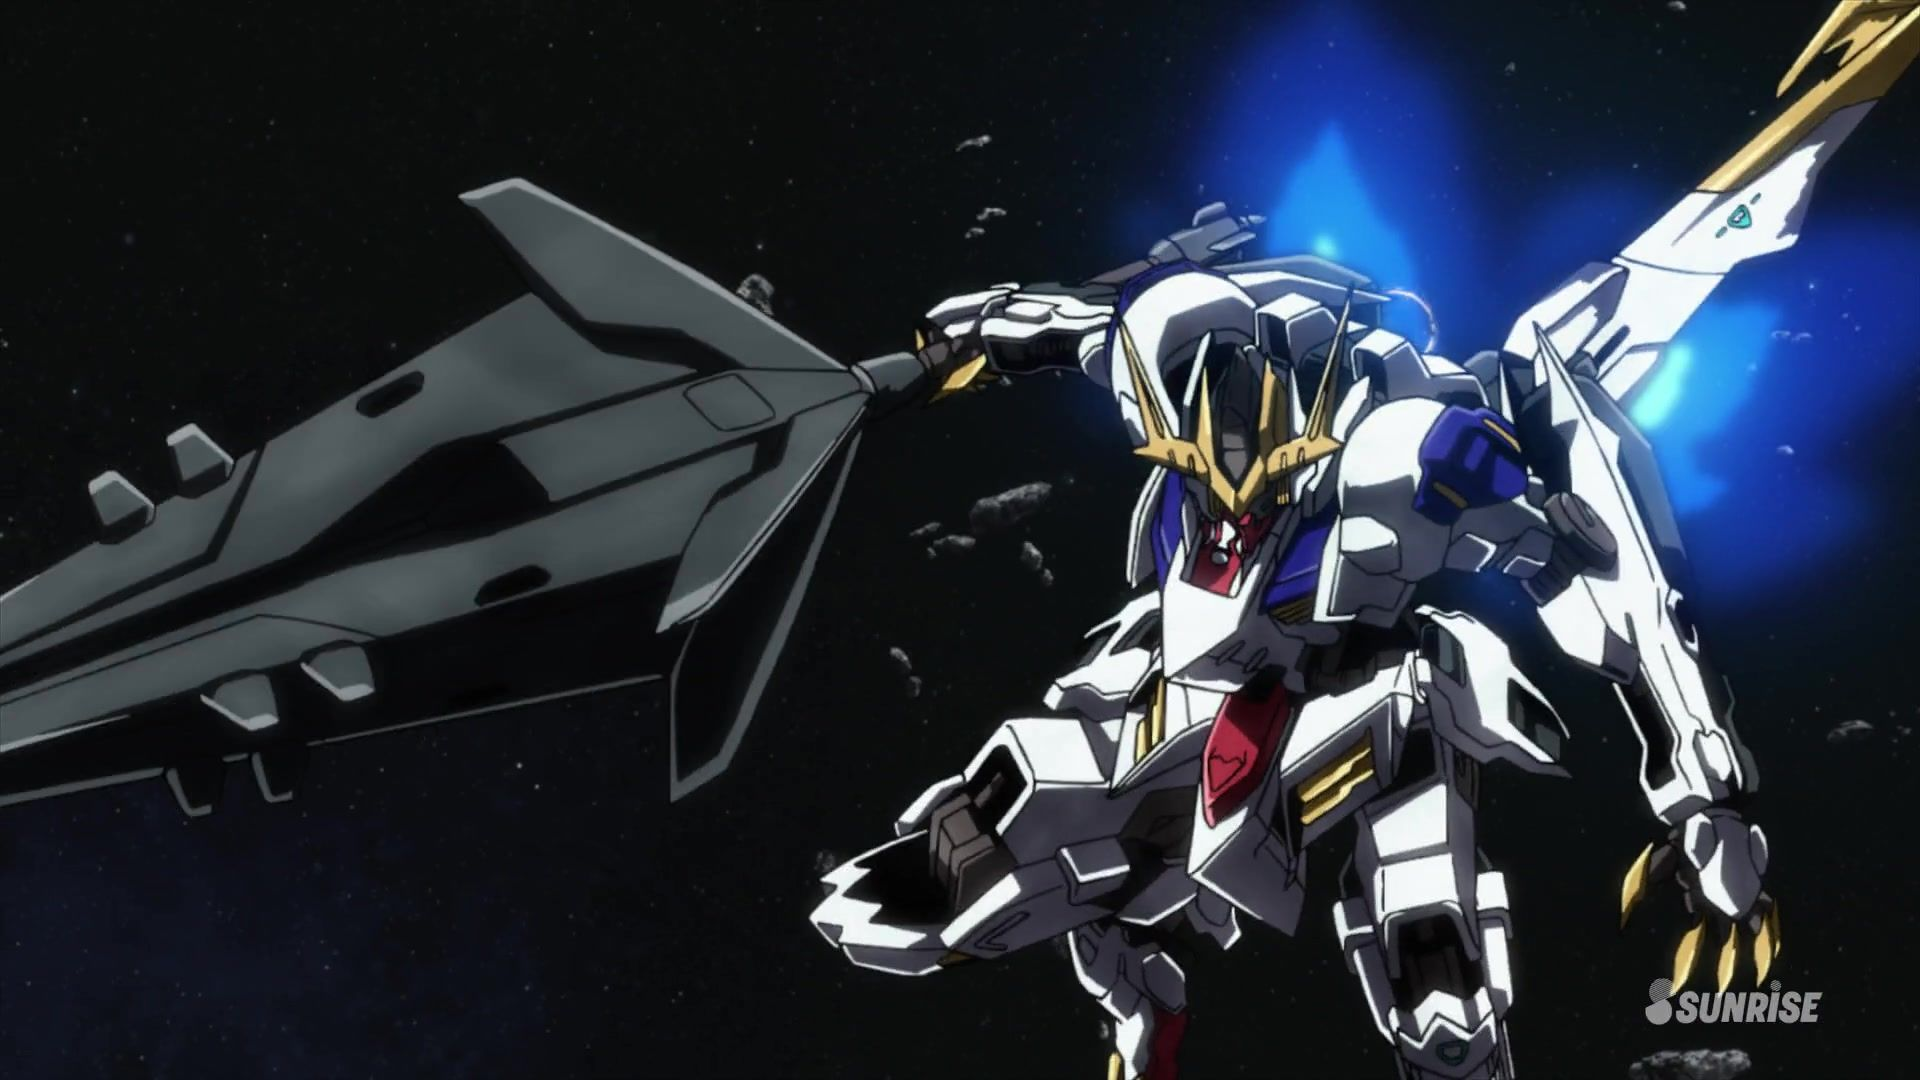 Gundam Barbatos Lupus Rex Wallpaper Anime Wallpaper Gundam